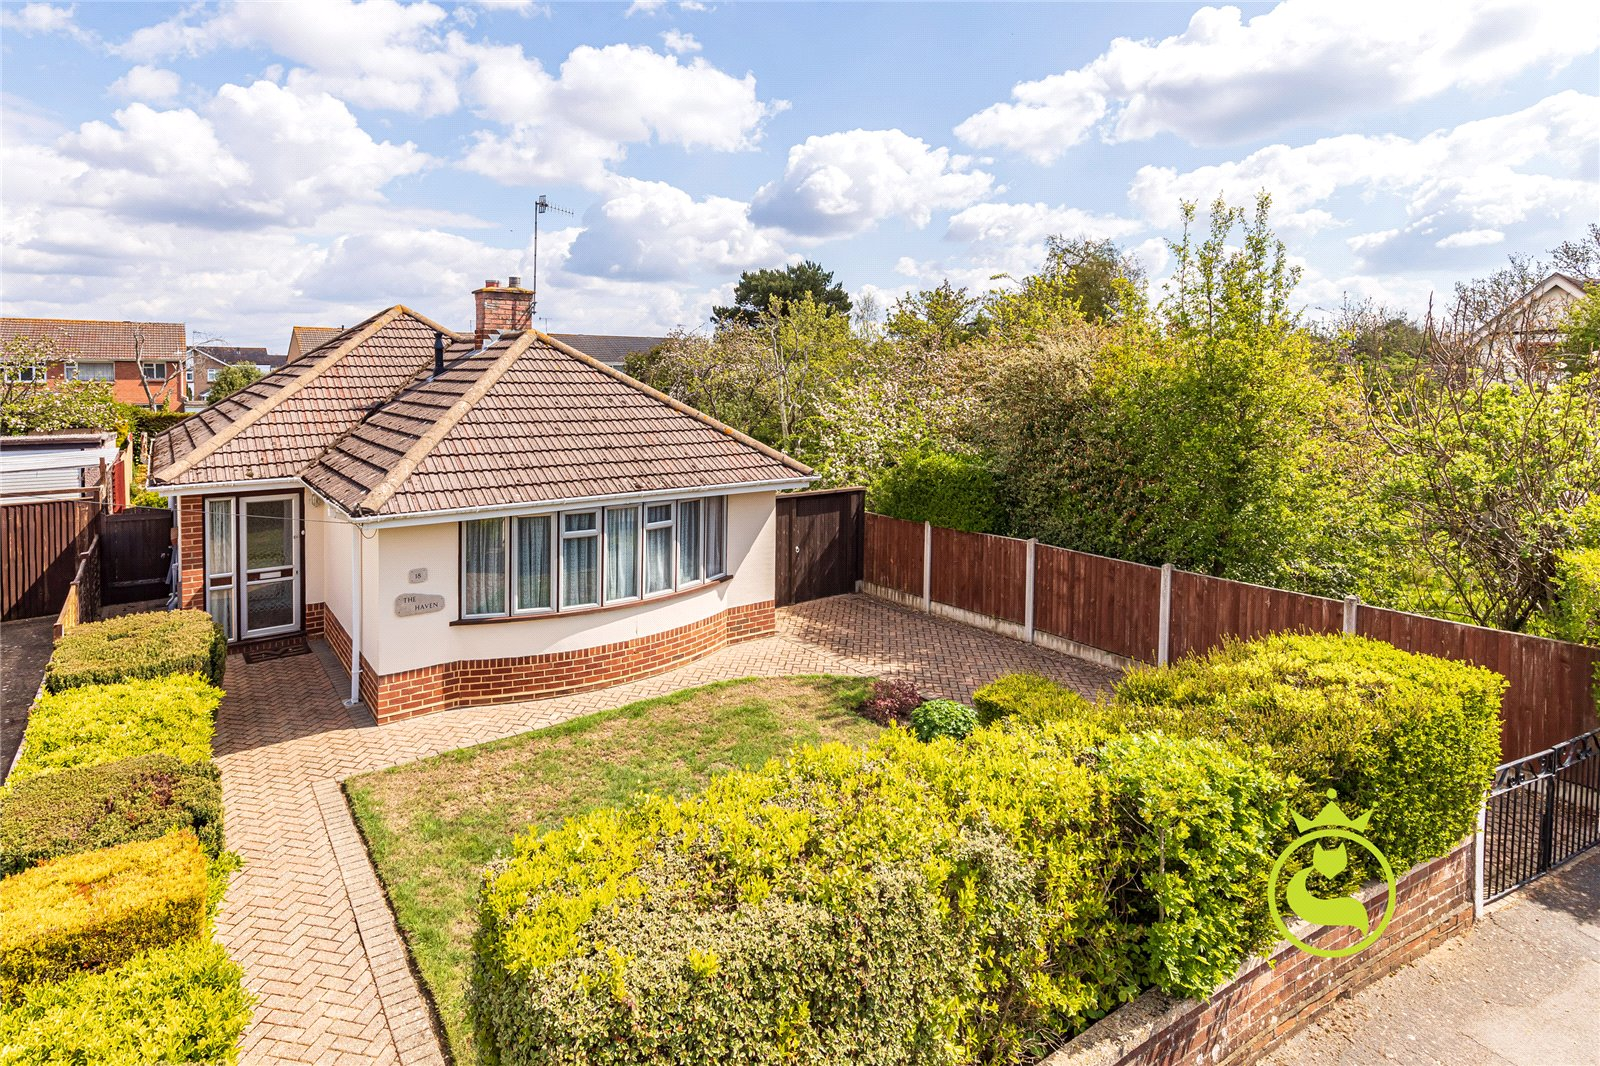 2 bed bungalow for sale in Rectory Road, Oakdale, BH15